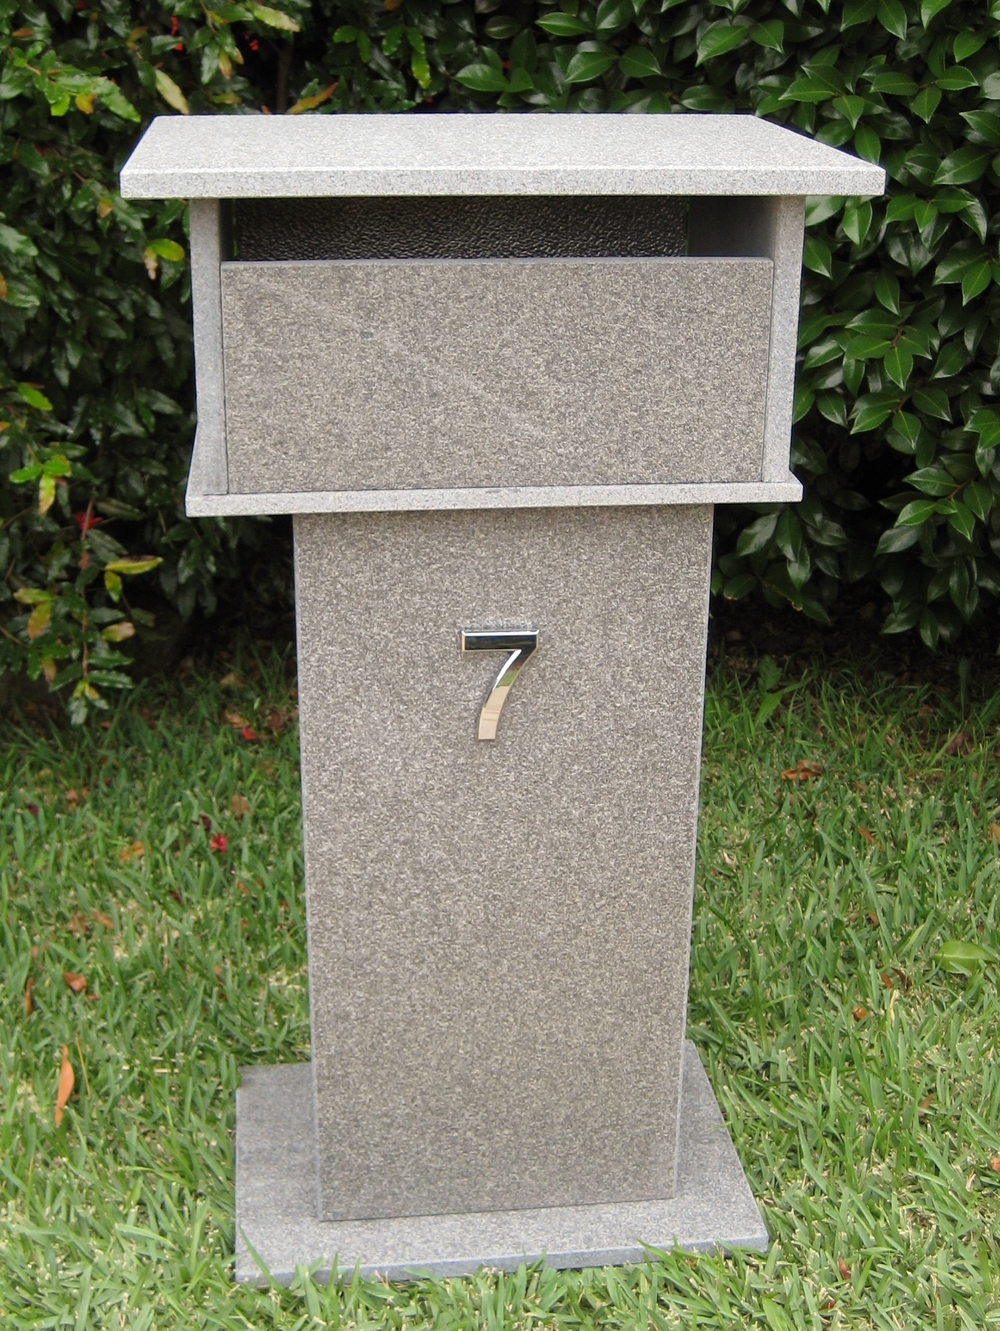 70. Blue stone letterbox with bushhammered finish. Back 2 key aluminium door. Tough material. Sizes 820x400x300 $374